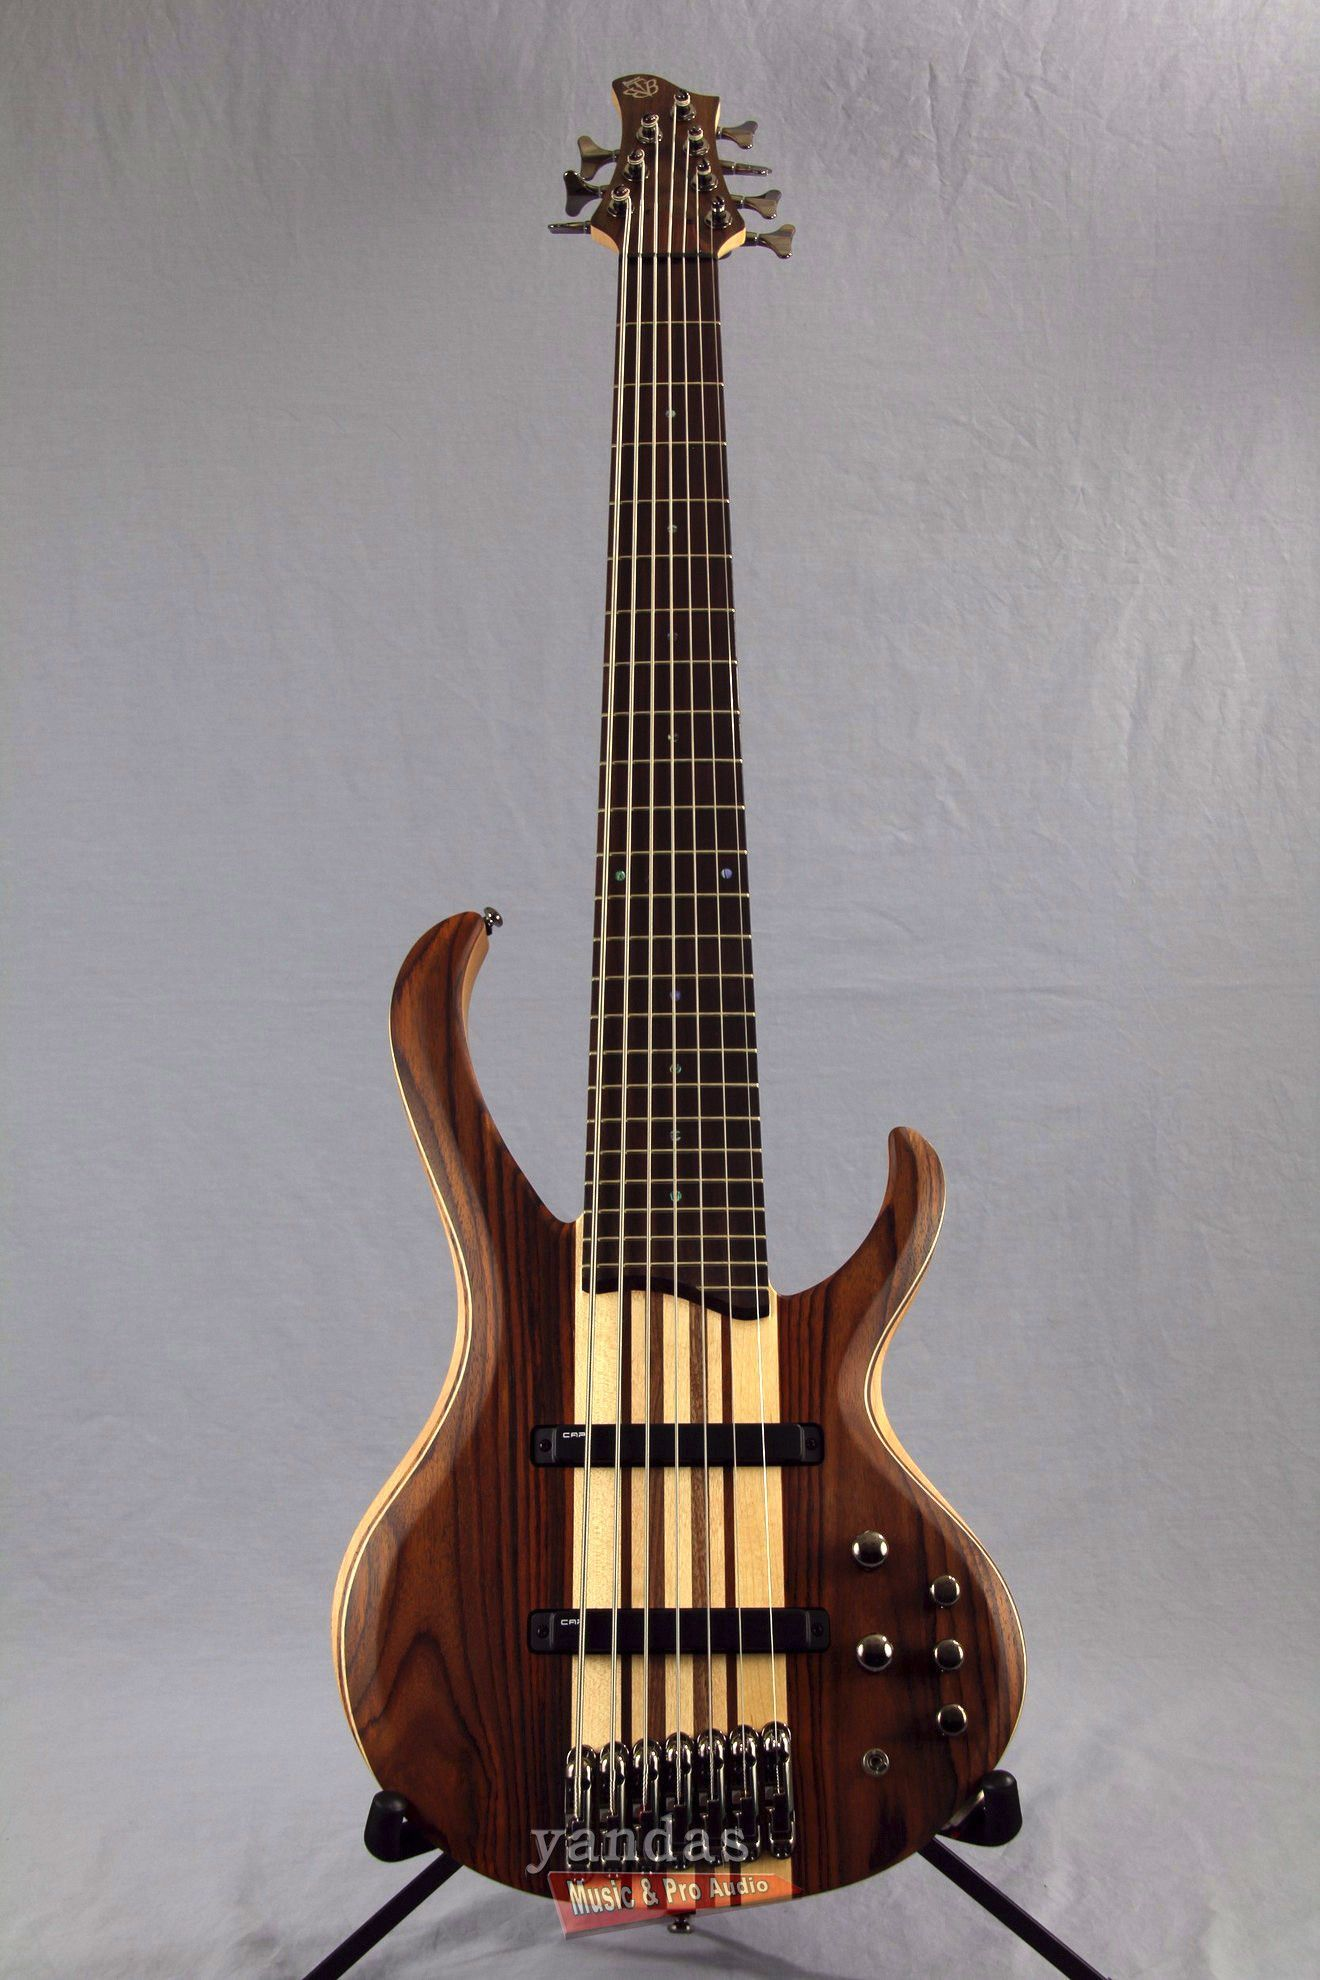 ibanez btb7e 7 string bass guitar in natural flat musical instruments guitar double bass. Black Bedroom Furniture Sets. Home Design Ideas